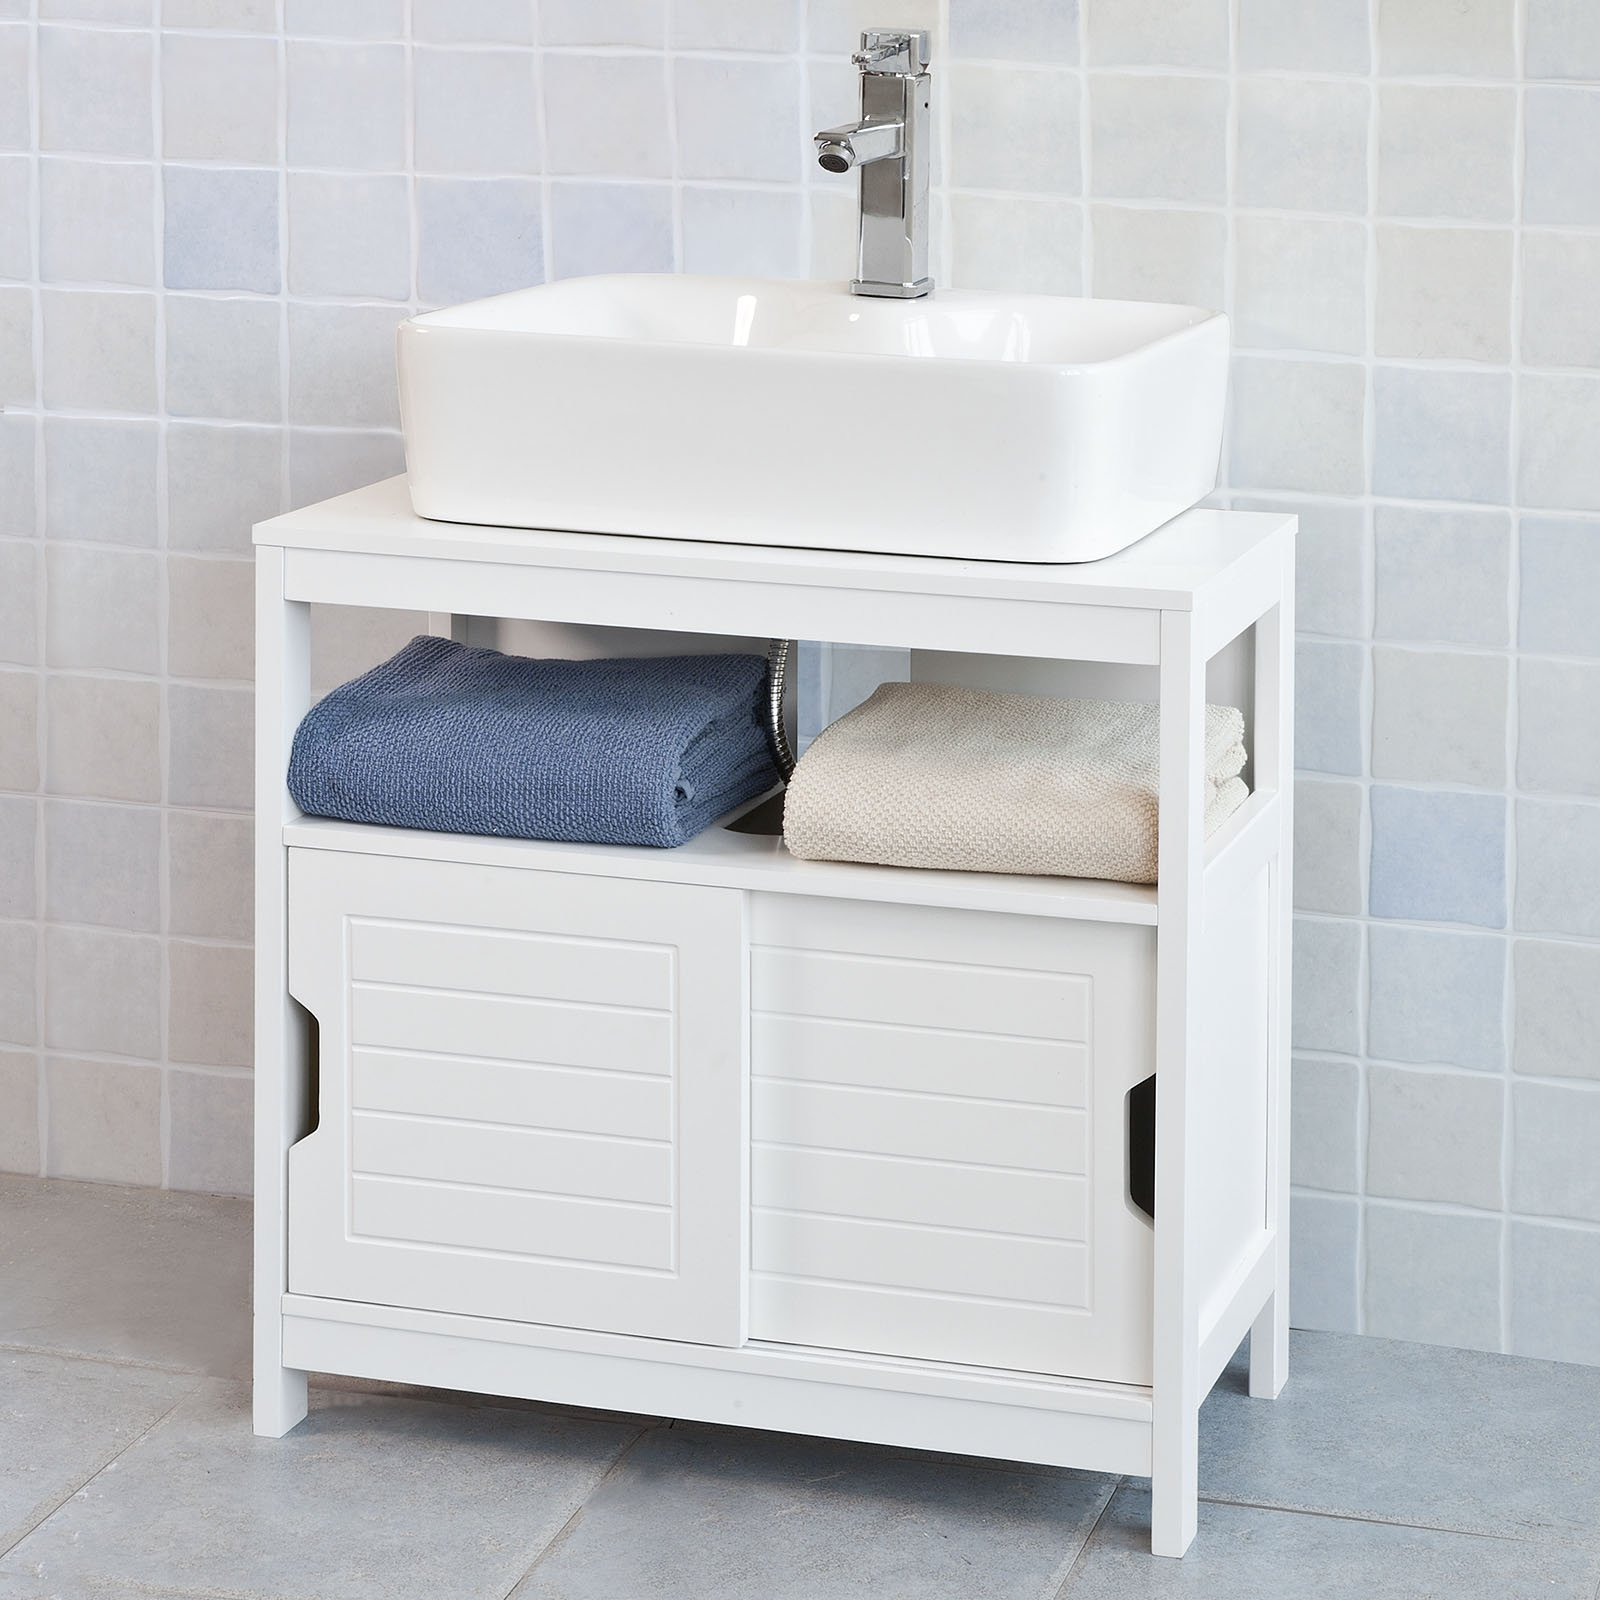 Haotian white under sink bathroom storage cabinet with - Bathroom vanity under sink organizer ...